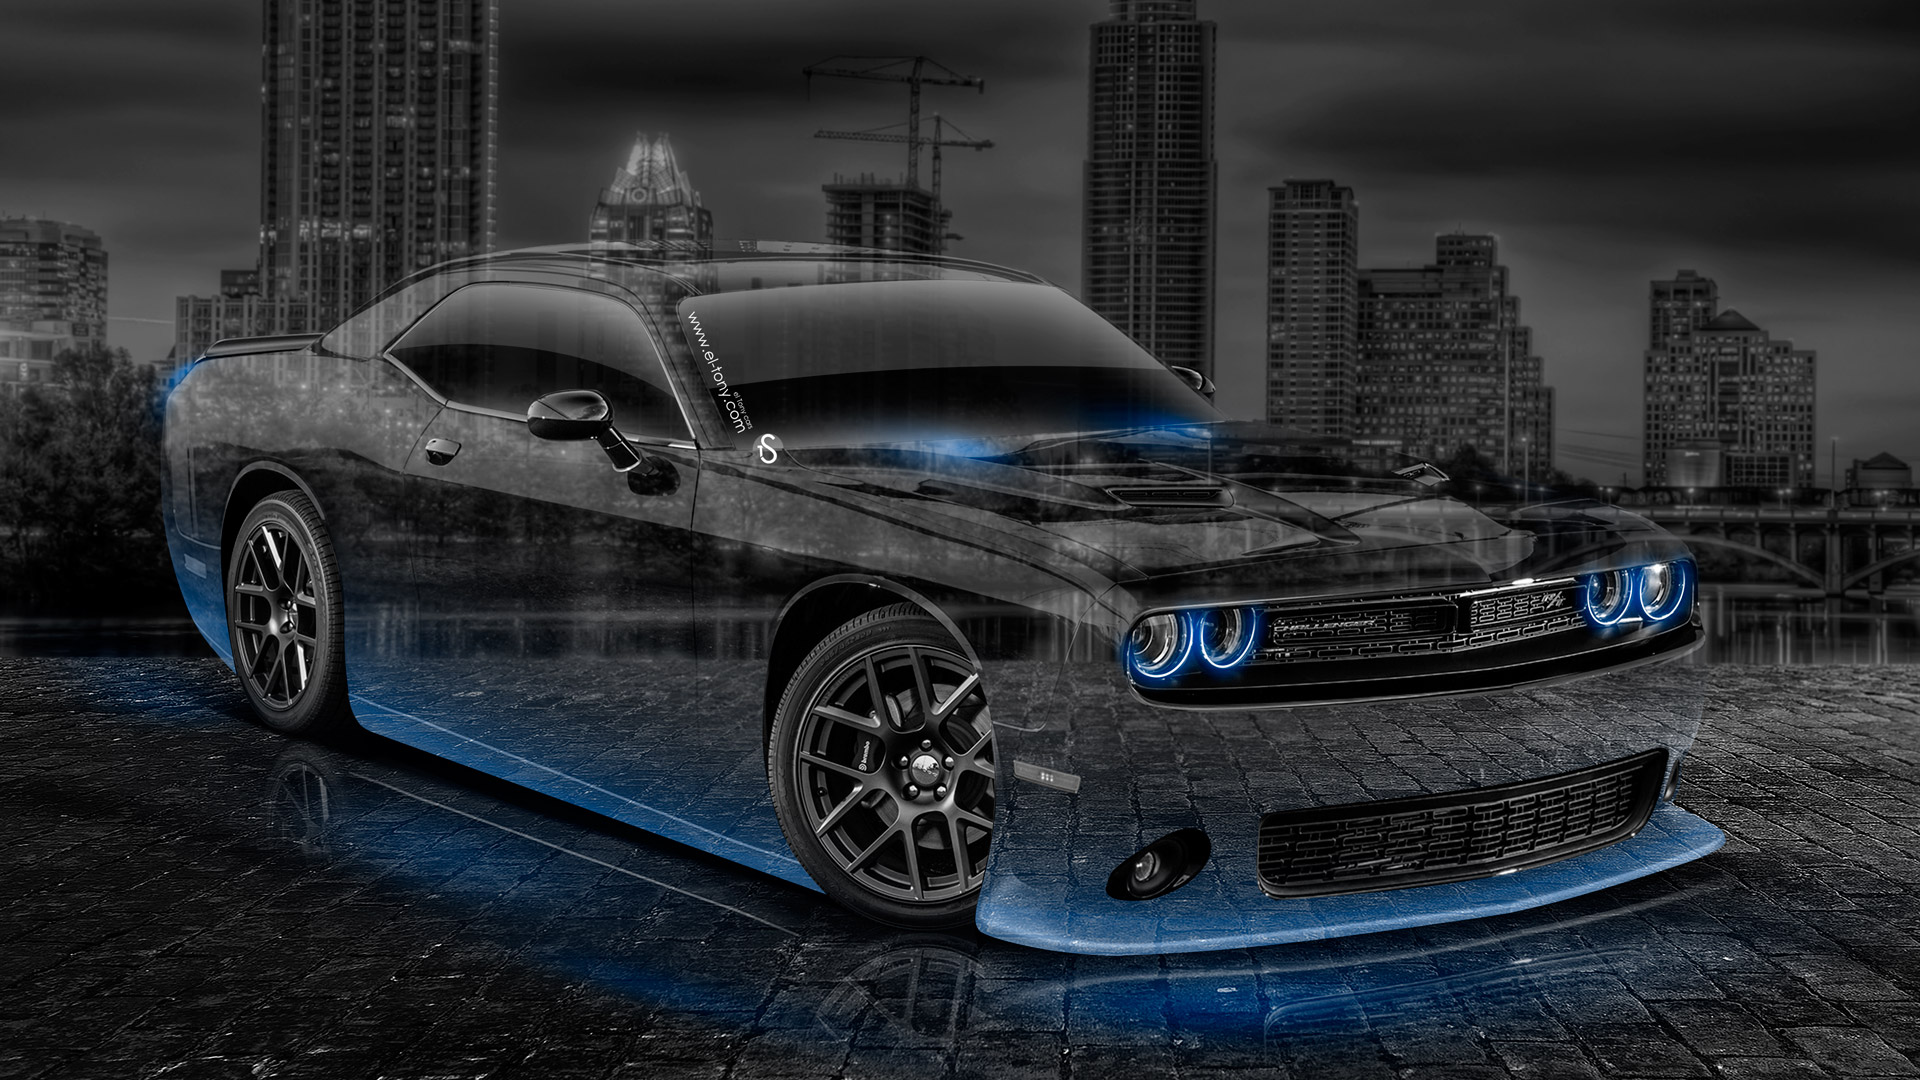 Superior Attrayant Dodge Challenger Muscle Crystal City Car 2014 .